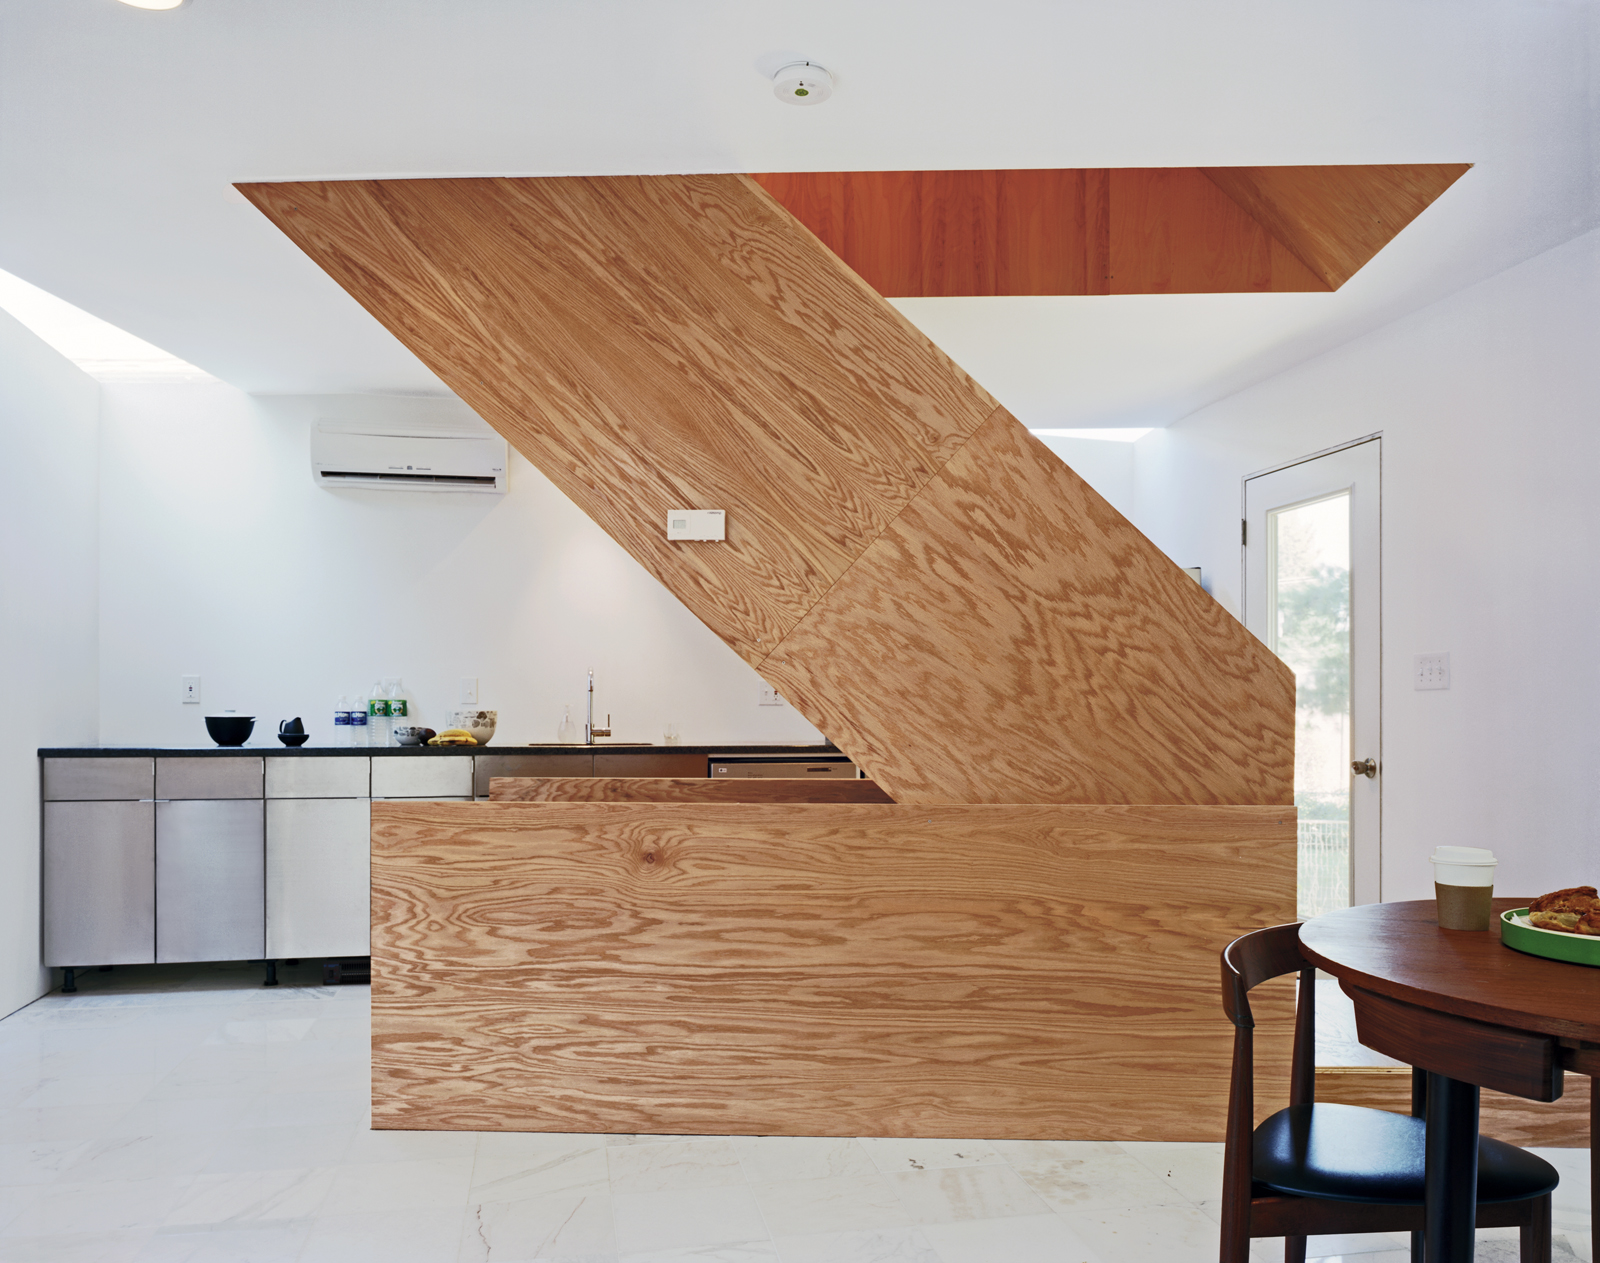 The wooden stairwell in the center of X-Small provides a pivot point from which the rest of the house rotates. The floor is Carrara marble bought from Olympia Marble and Home Depot.